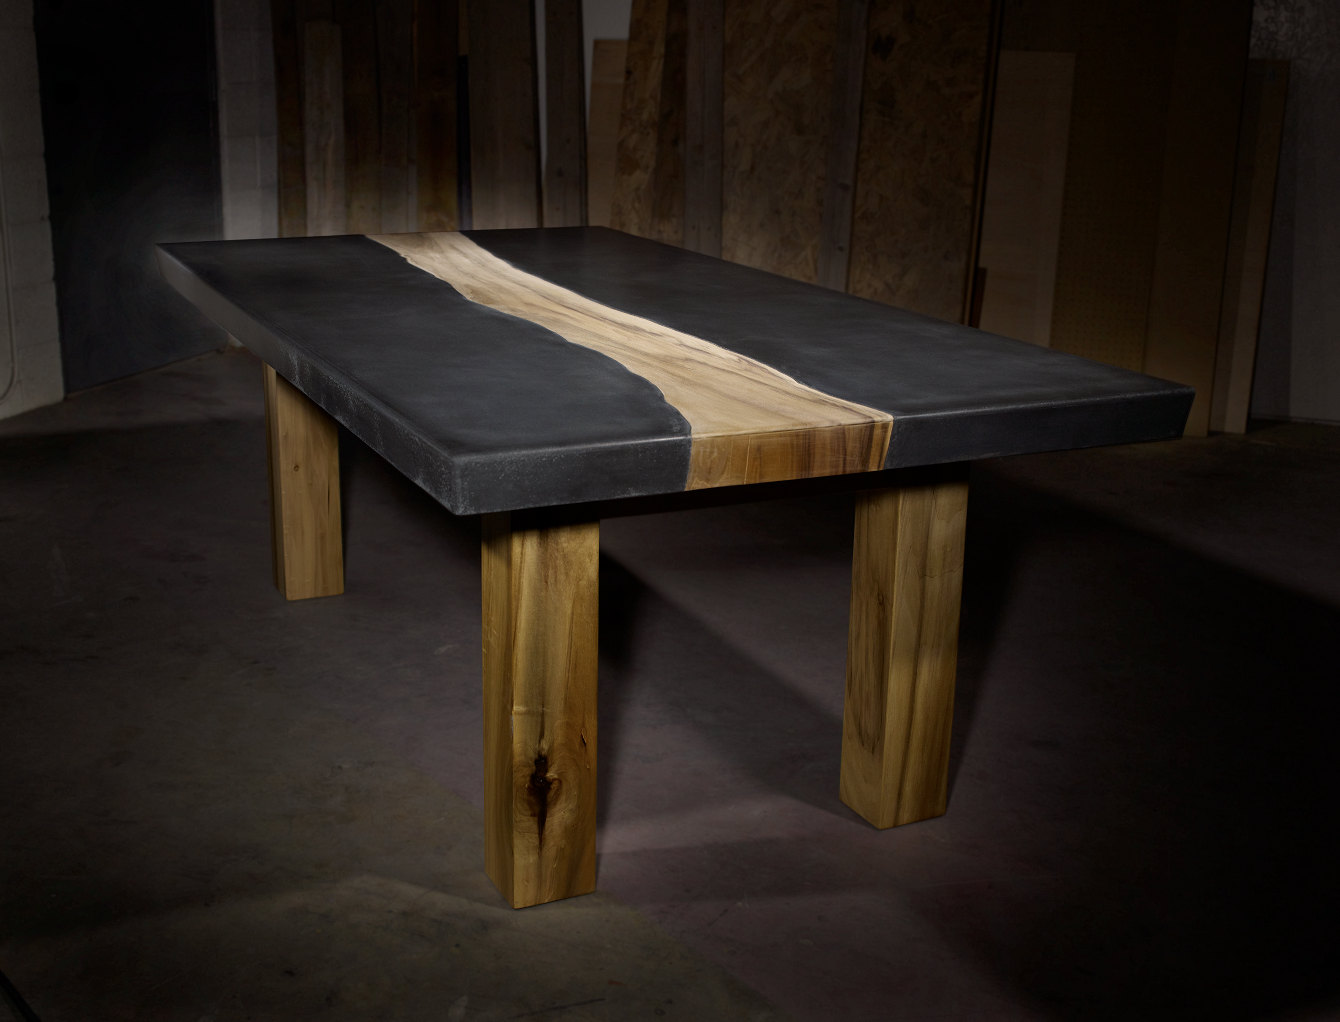 10 Unique Pairings Of Materials Revolving Around Wood : polished concrete and wood amazing dining table1 from www.homedit.com size 1340 x 1022 jpeg 128kB